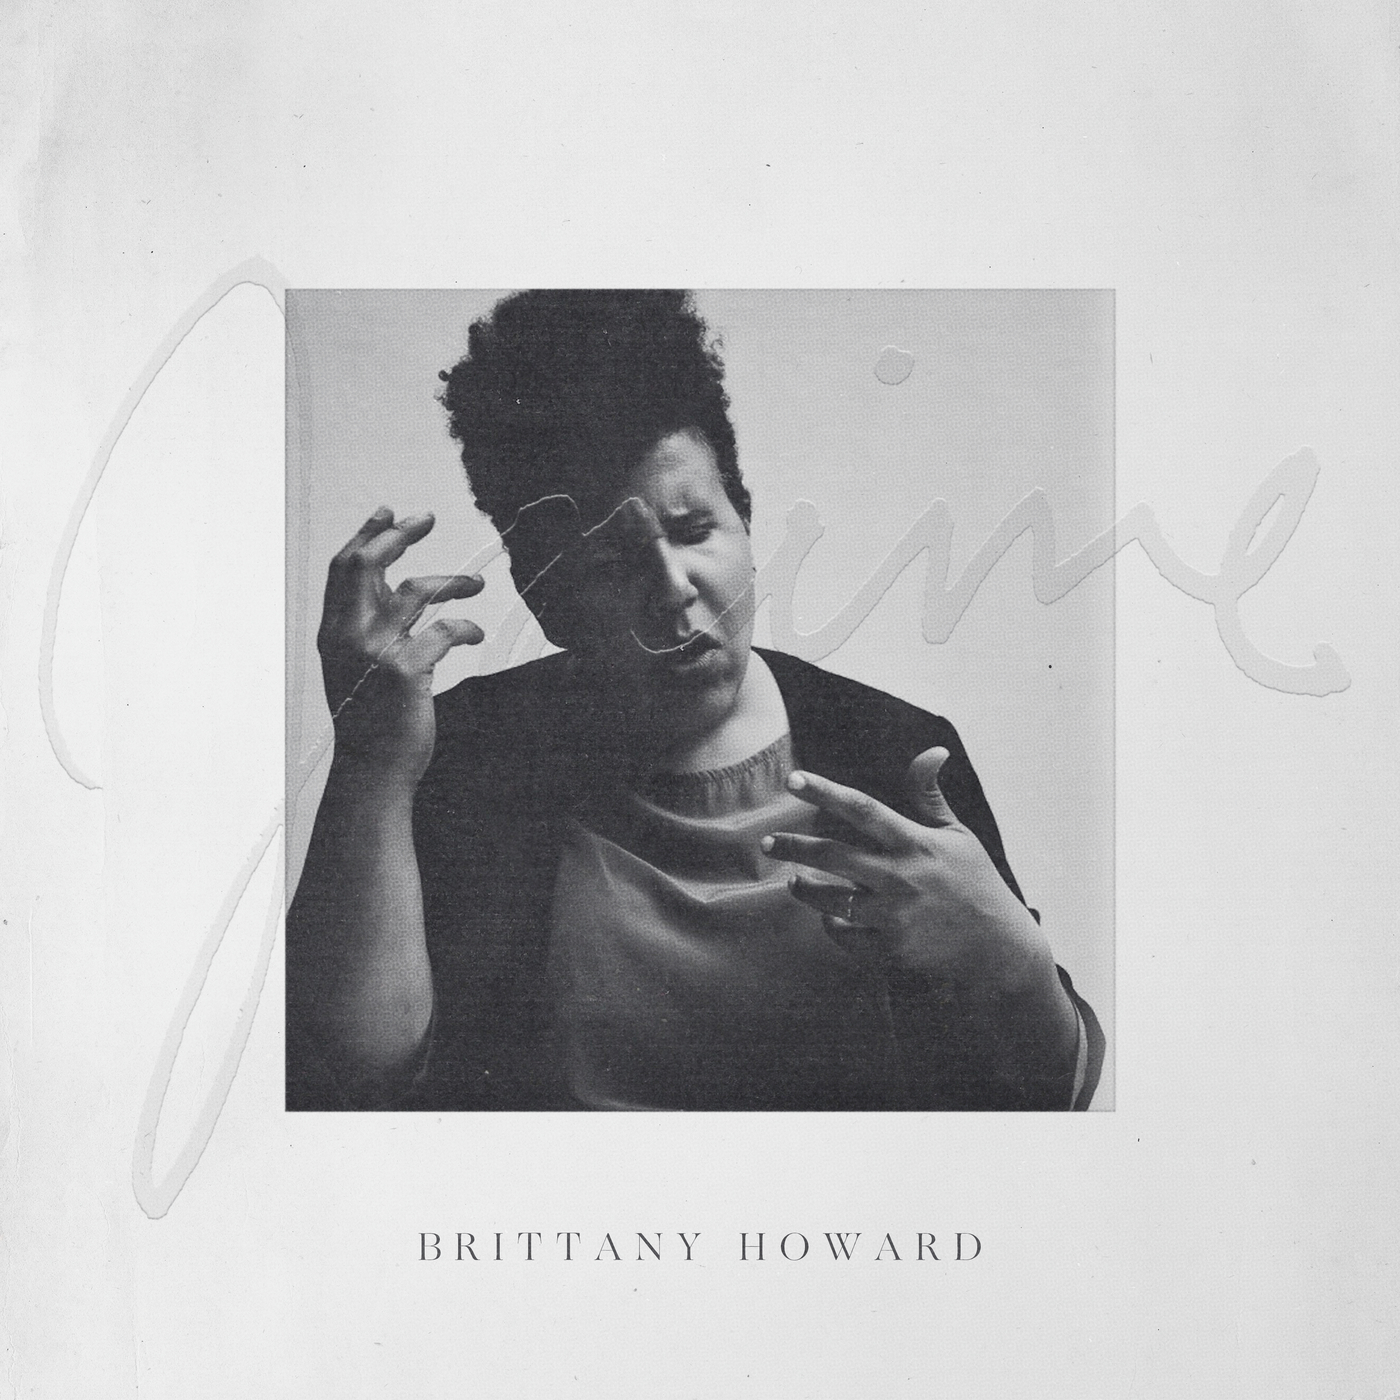 13th Century Metal - Brittany Howard